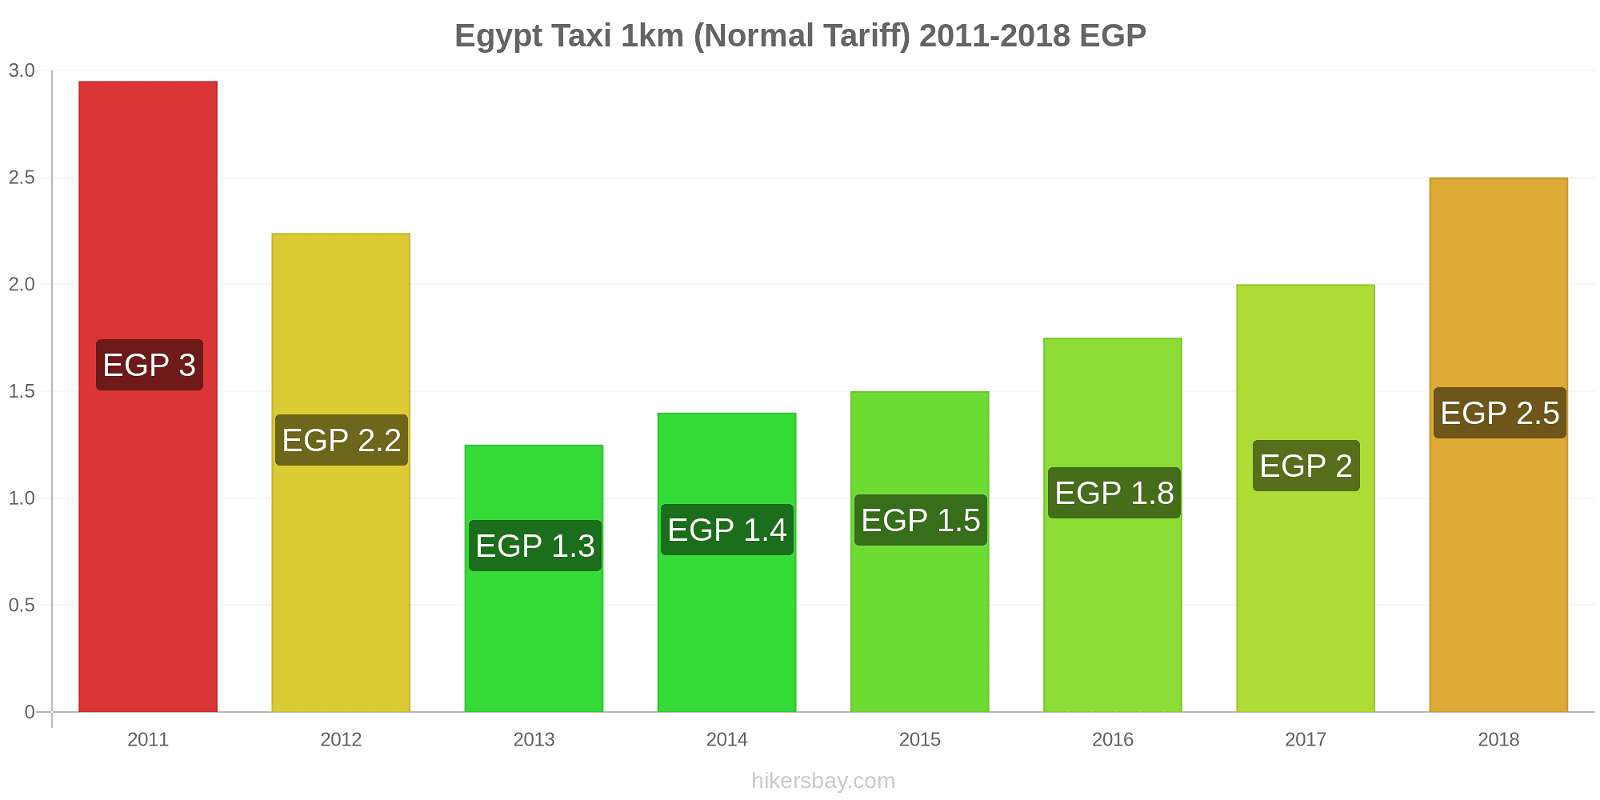 Egypt price changes Taxi 1km (Normal Tariff) hikersbay.com